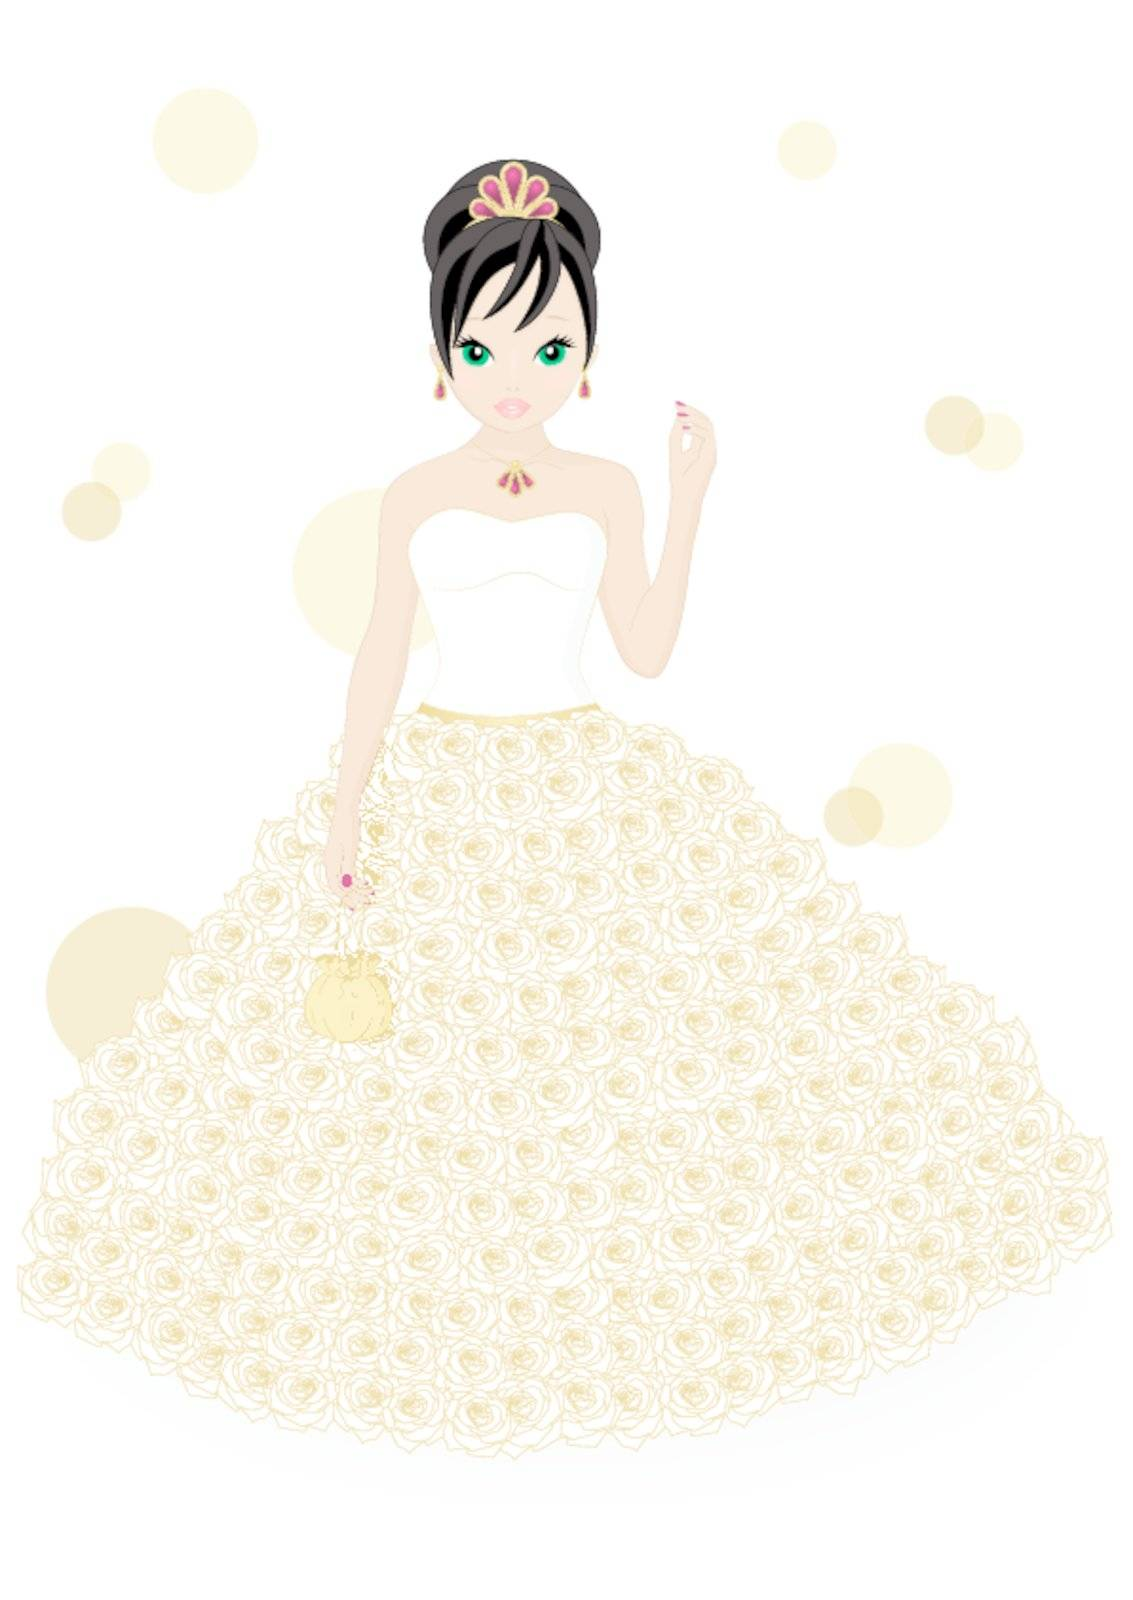 girl in a white dress isolated on white background